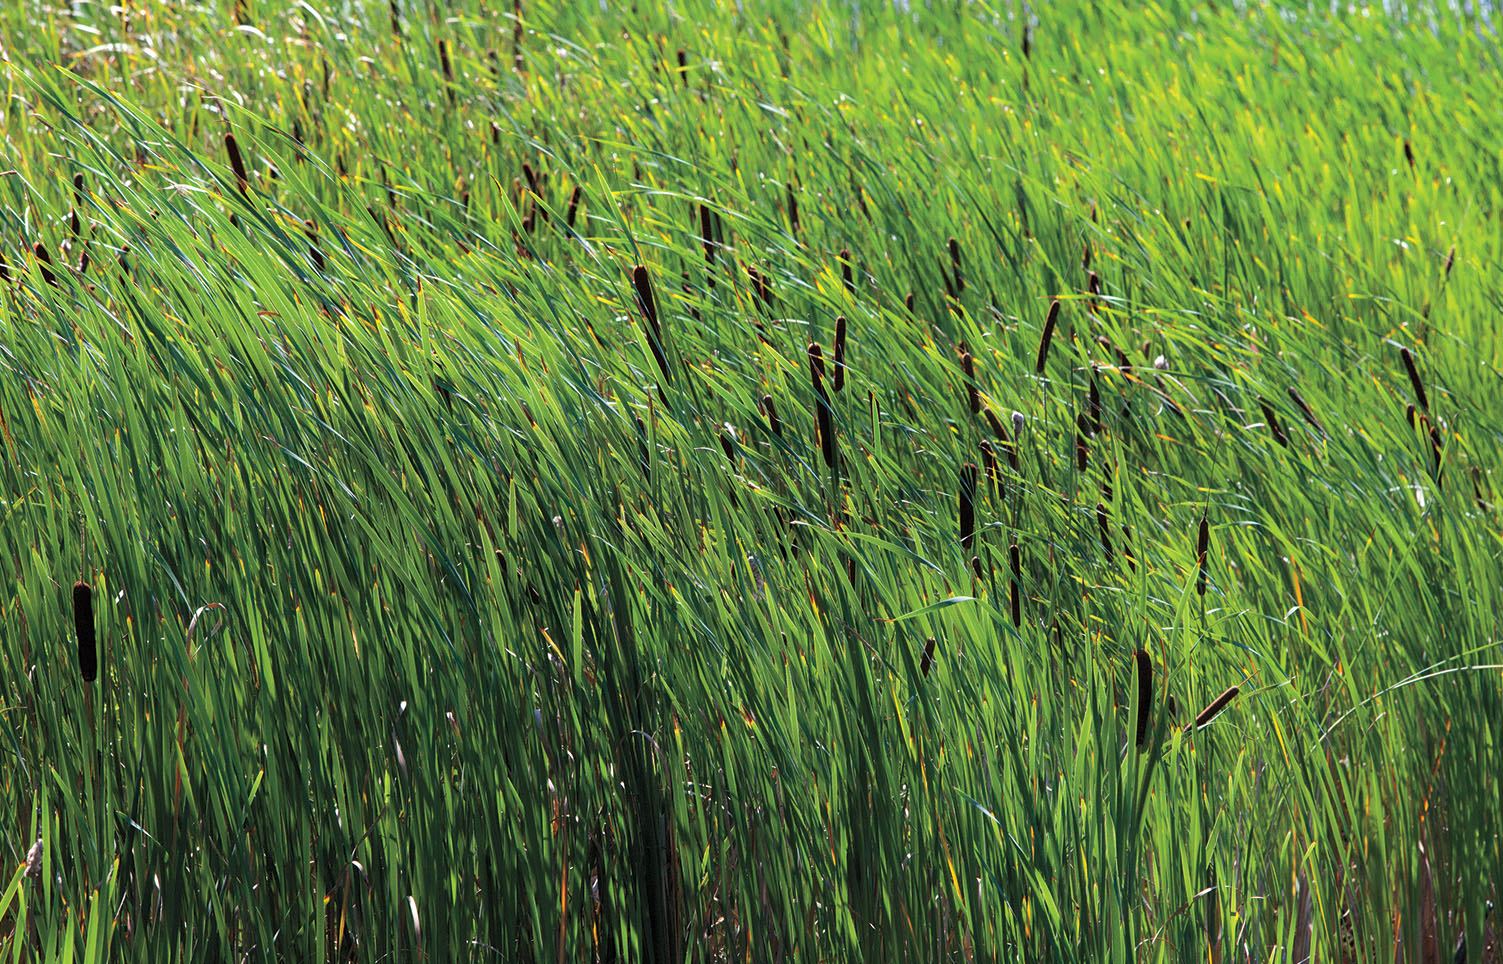 A photo of green reeds in the Alumnae Valley pond.